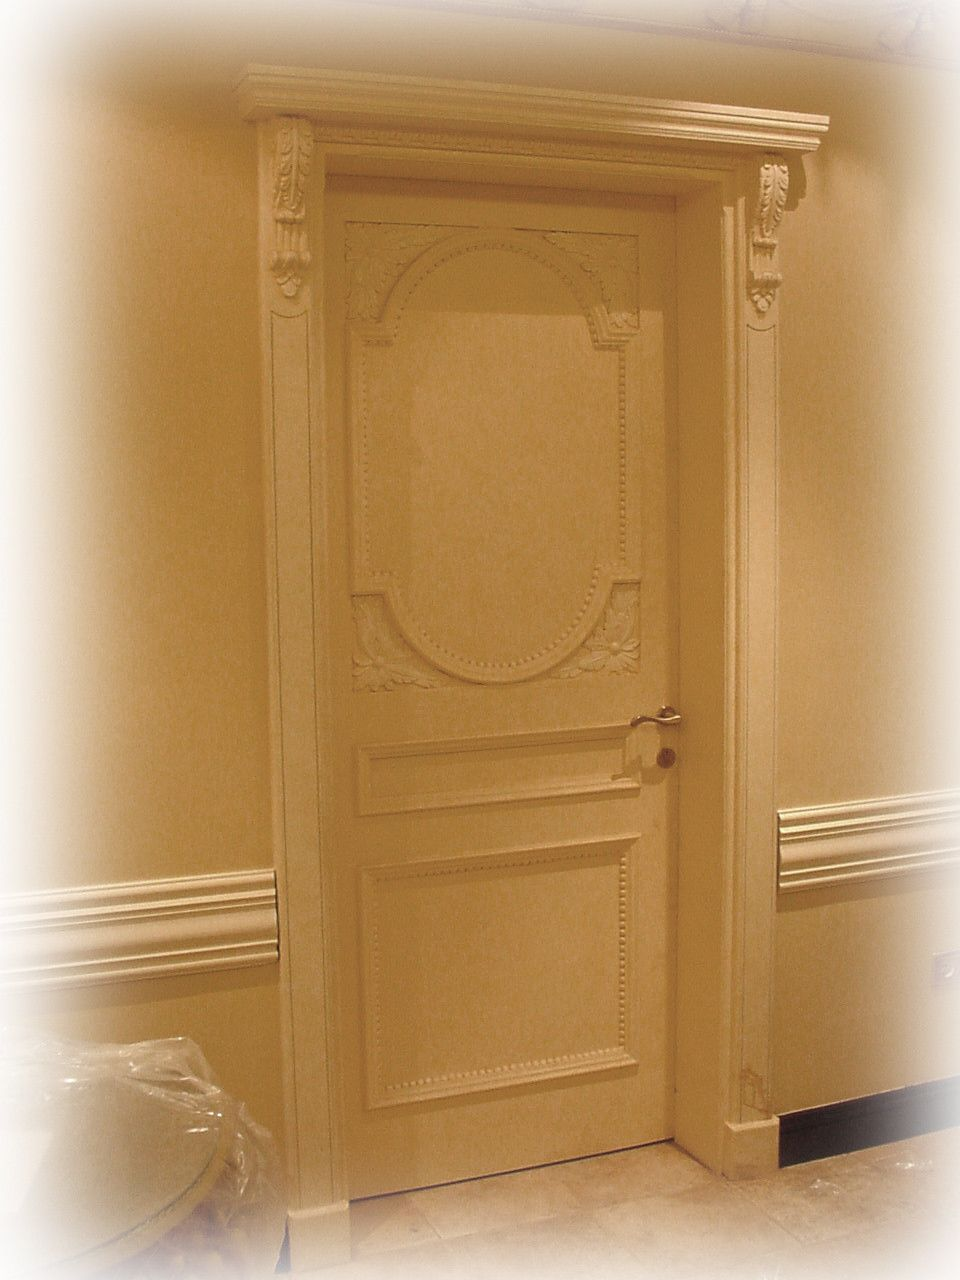 دهان ابواب داخلية دوكو Decor Home Decor Armoire